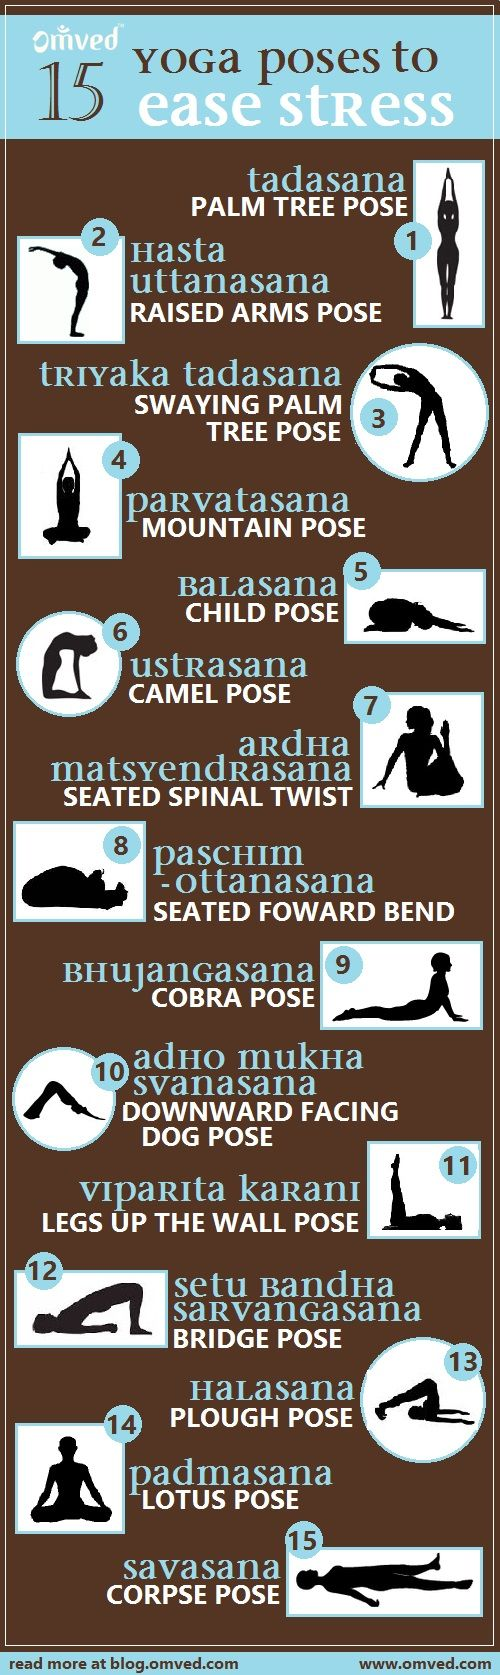 Top15 stress relieving yoga poses - Although all yoga asanas reduce stress and tension, increase strength and balance, increase flexibility and lowered blood pressure, there are some poses that reign supreme. Practise these poses with deep breathing for maximum benefits.: